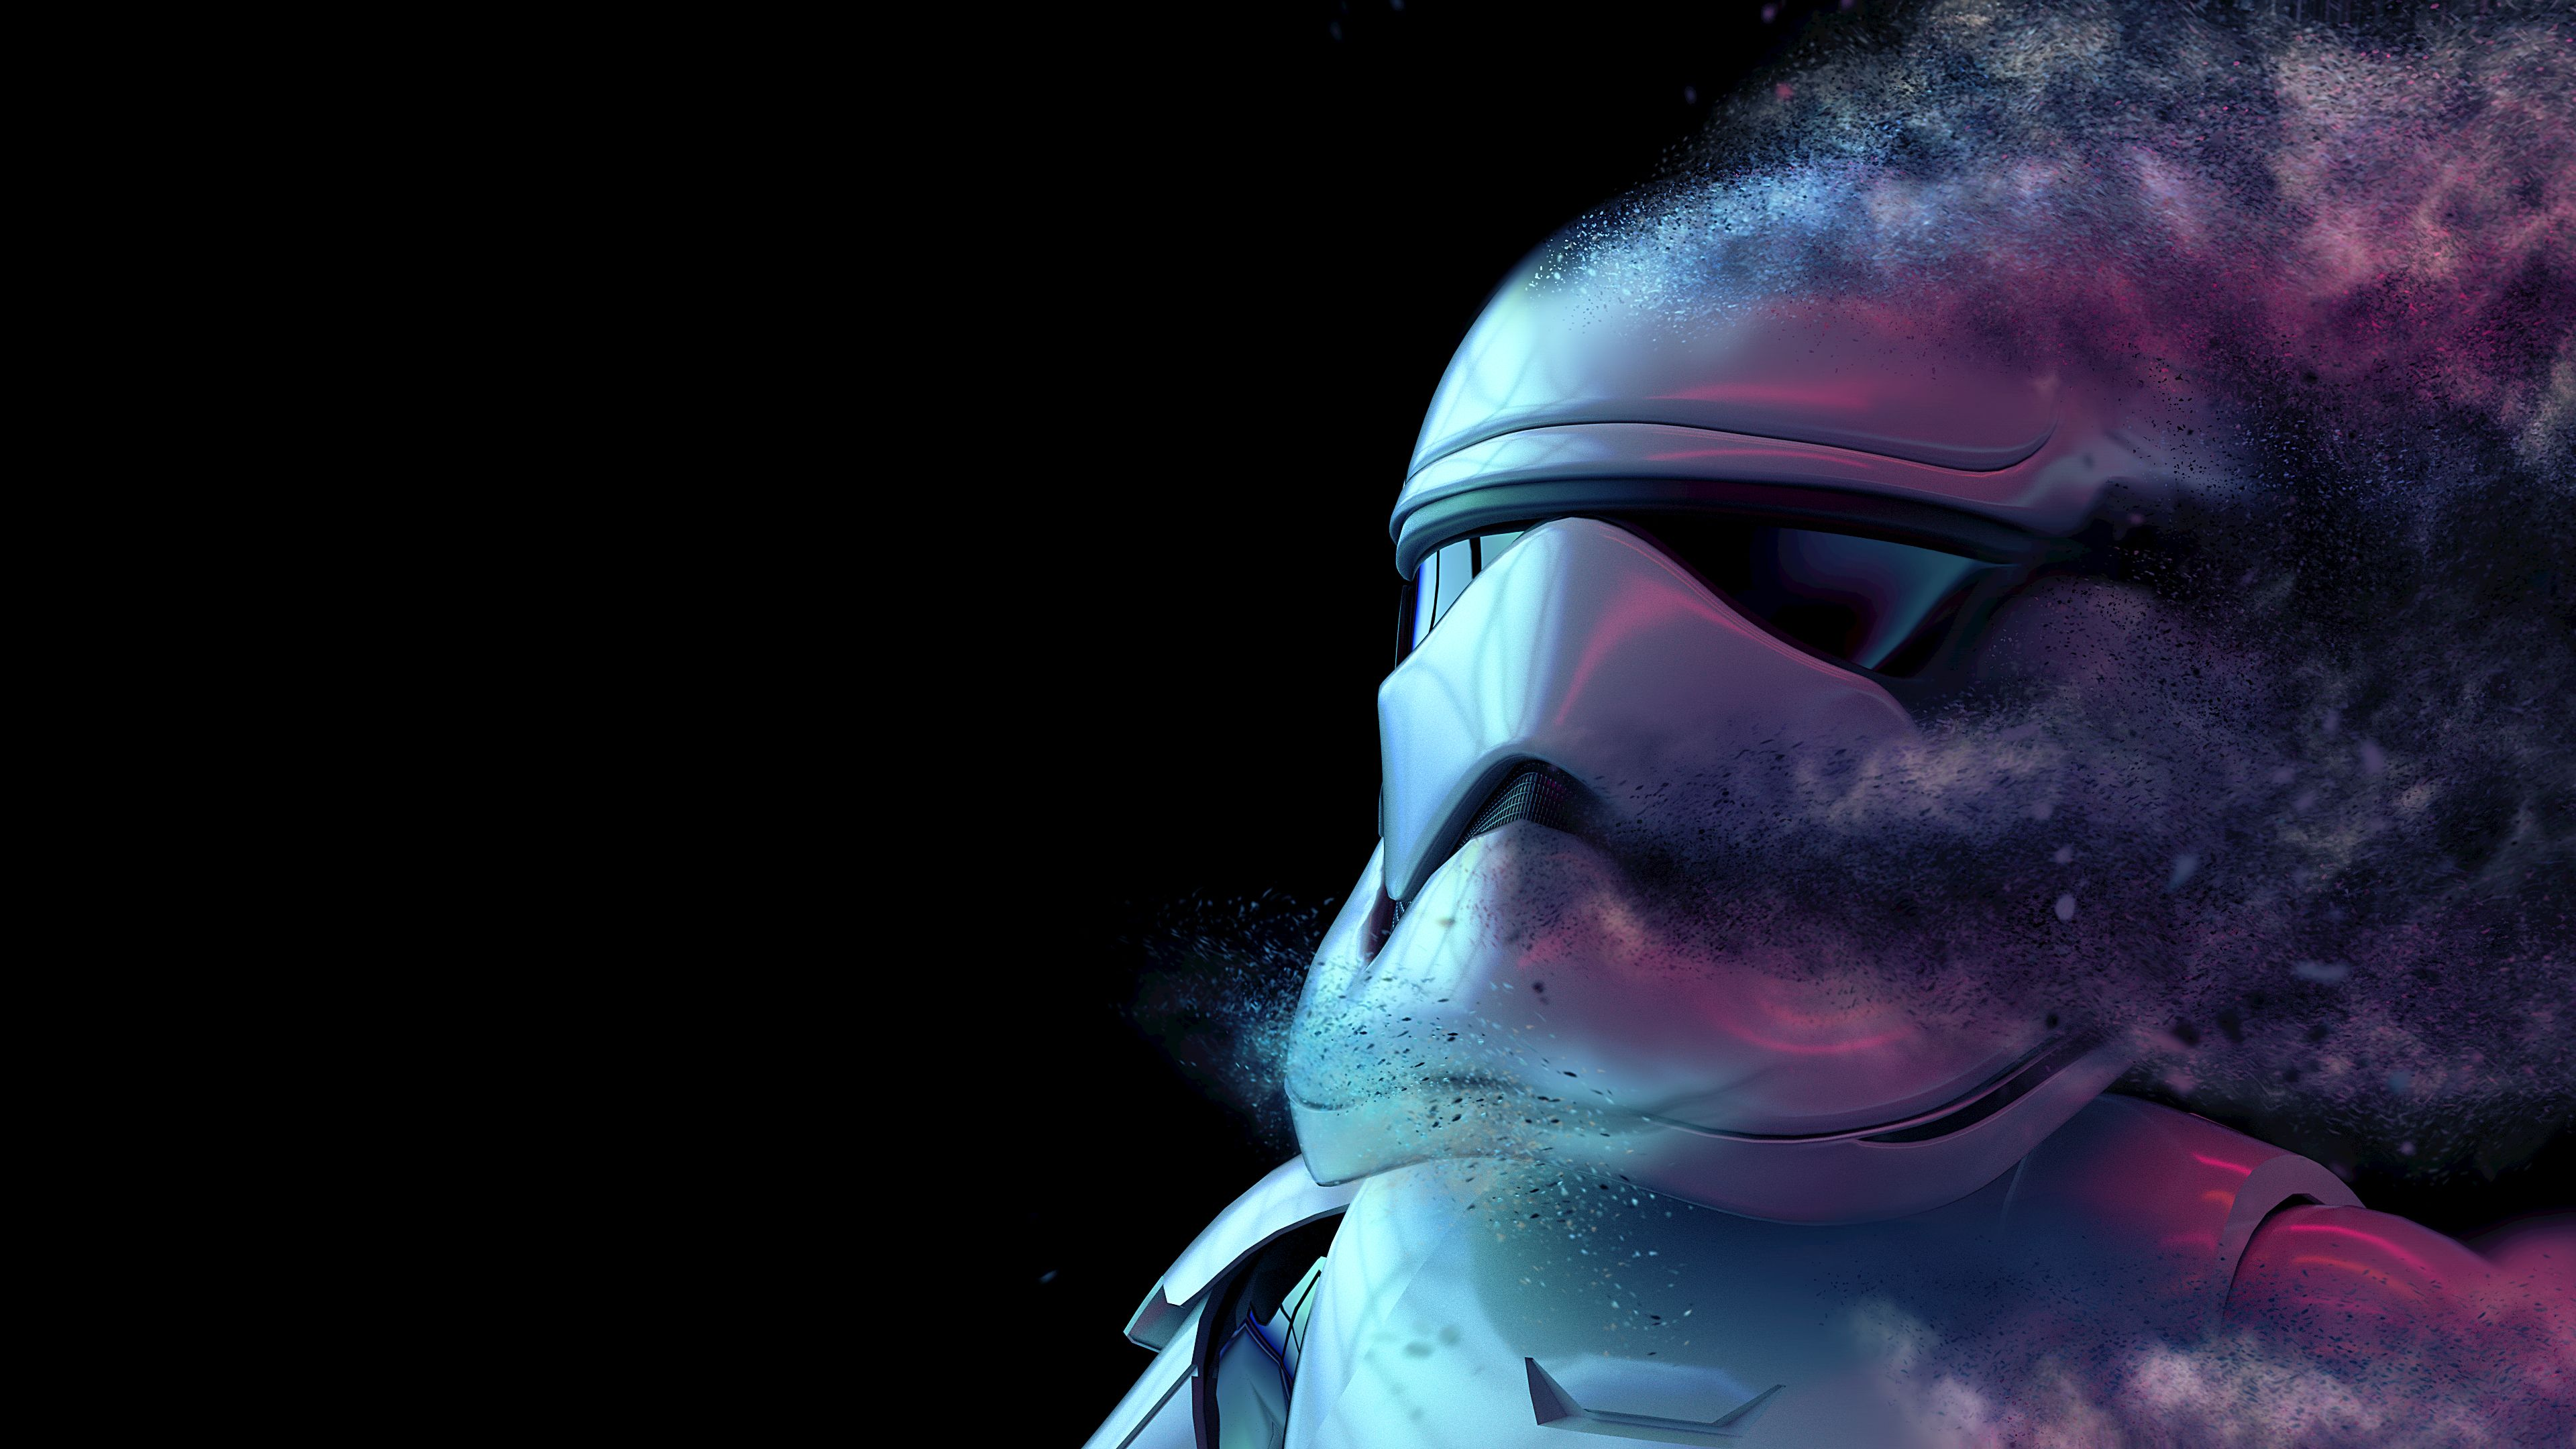 Storm Trooper Digital Art 4k Star Wars Wallpaper Star Wars Background Landscape Wallpaper